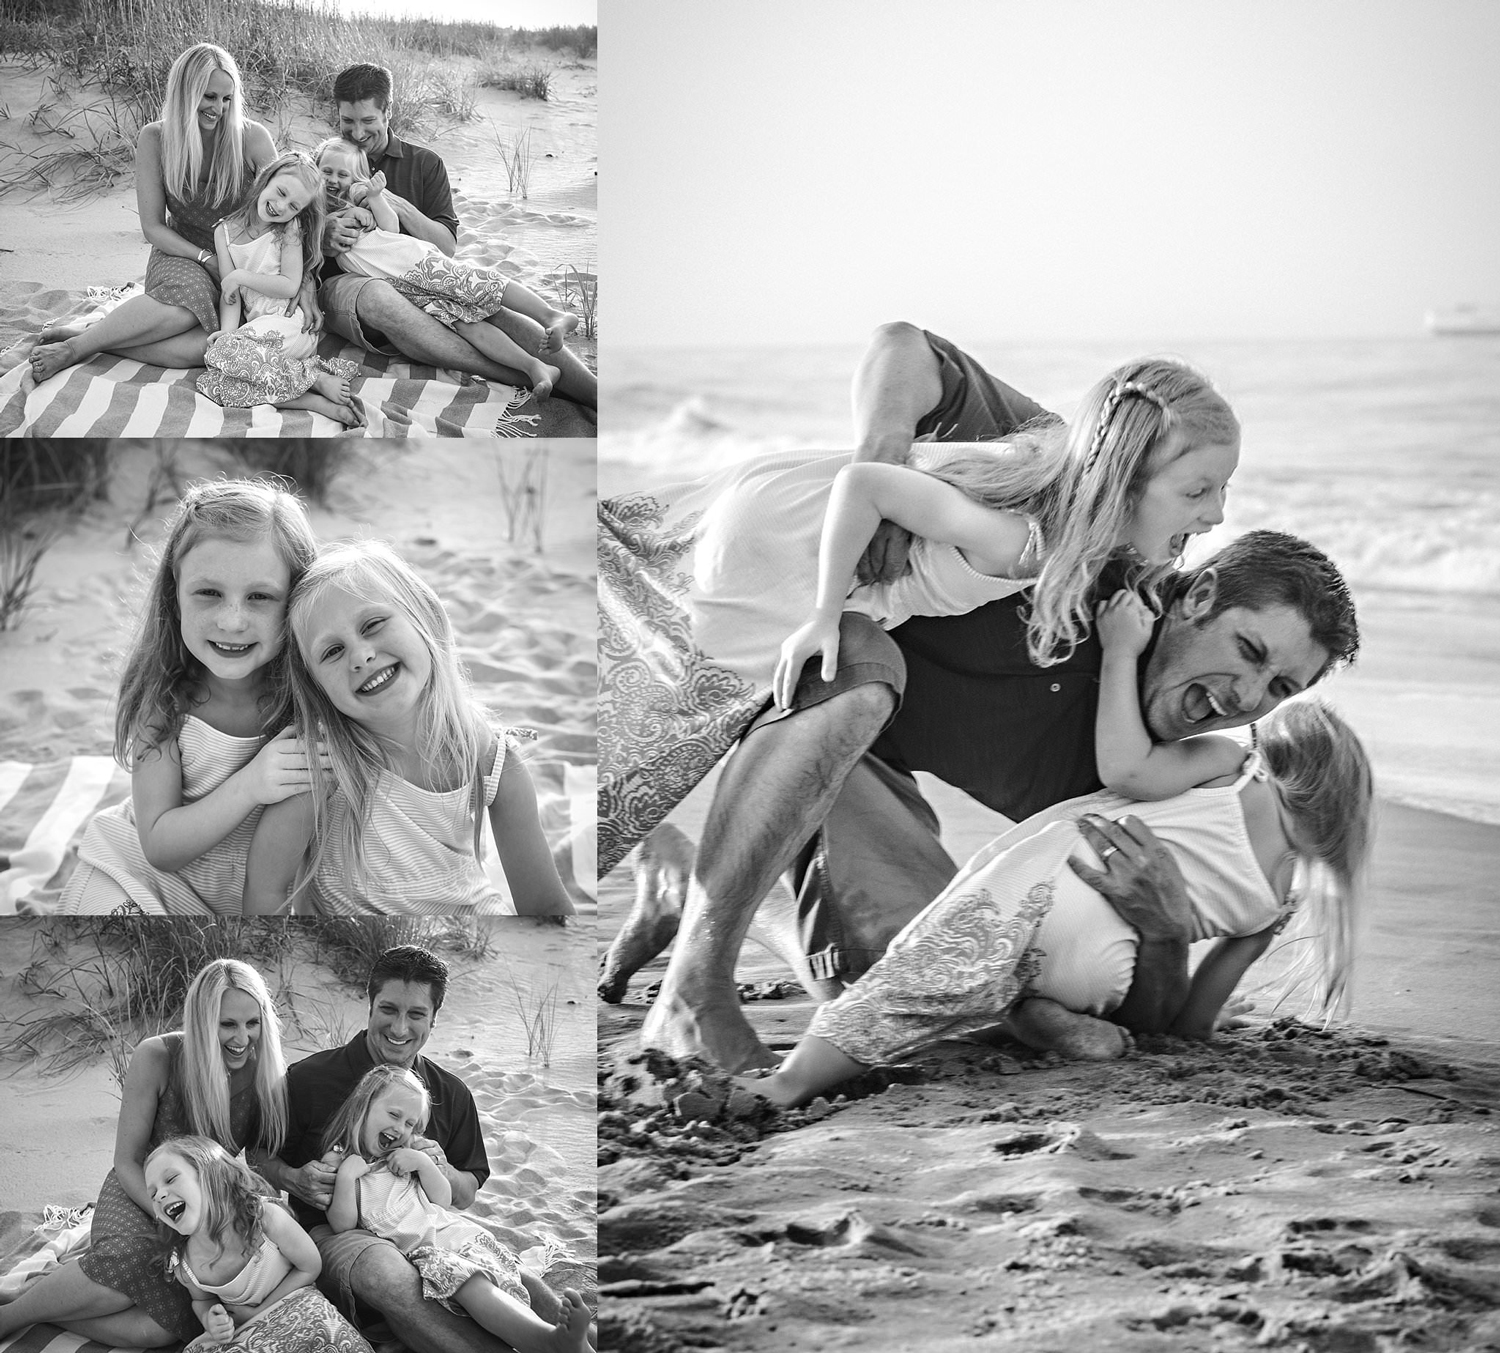 virignia-beach-documentary-photographer-melissa-bliss-photography-beach-session.jpg